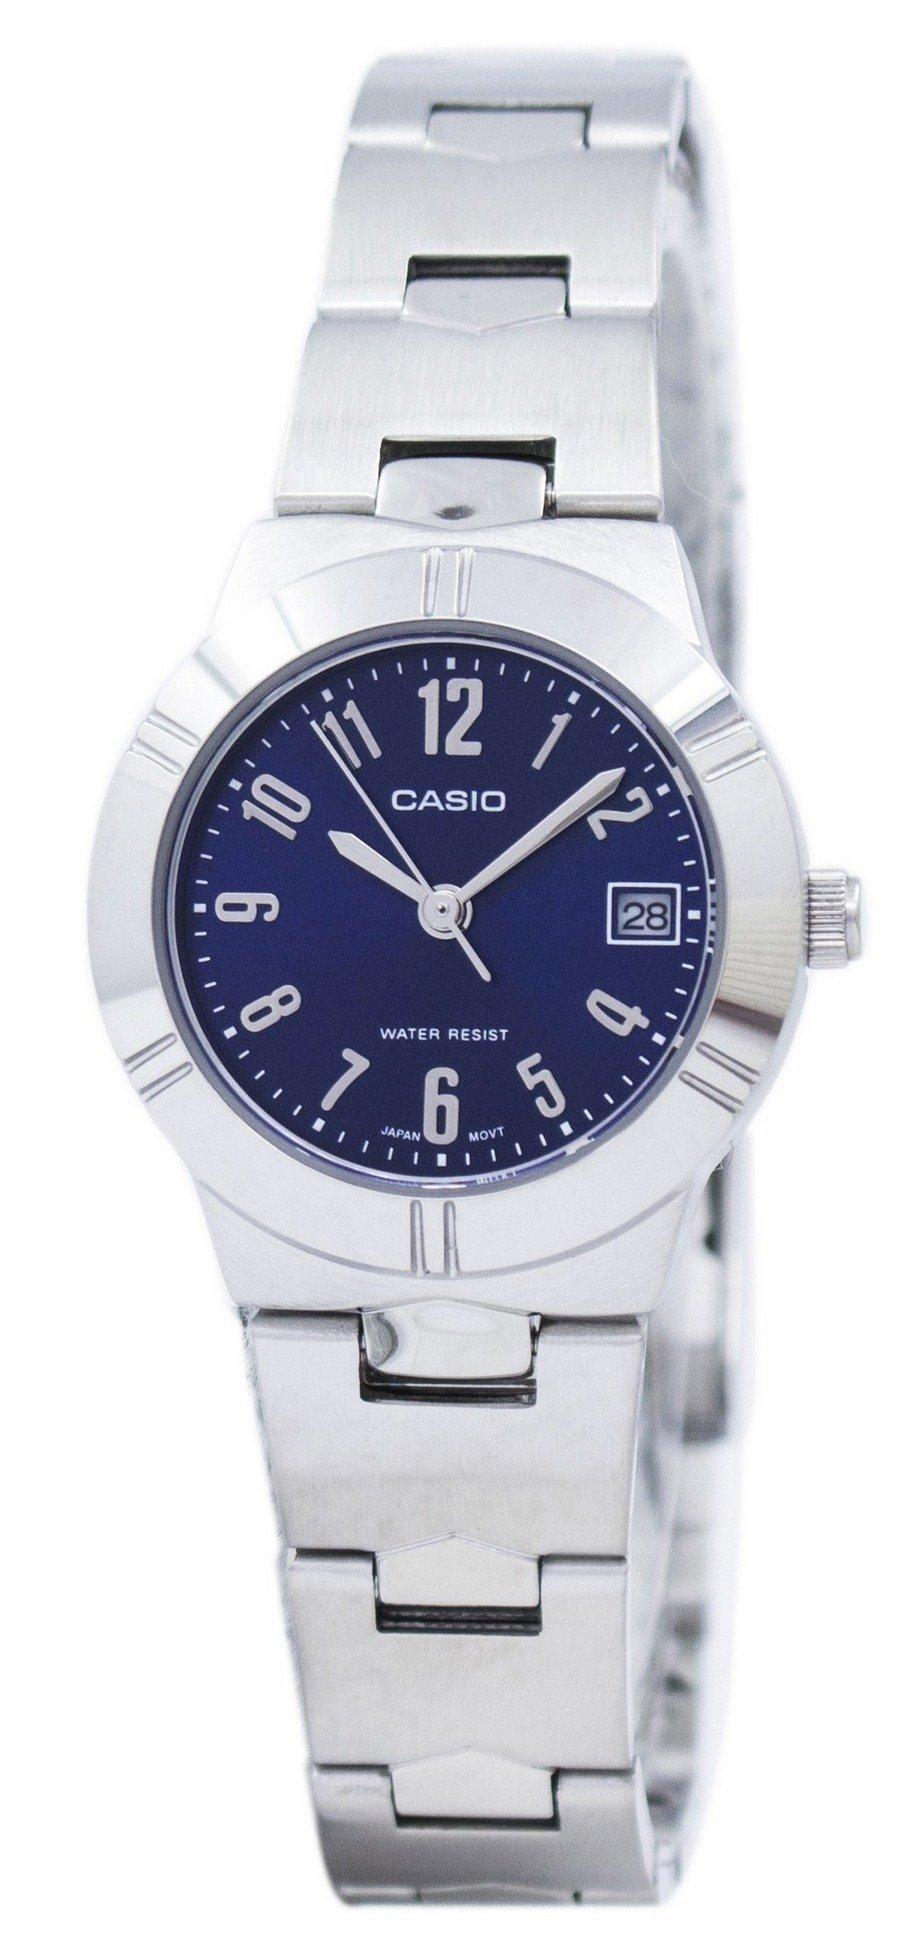 Casio Analog Quartz Blue Dial LTP-1241D-2A2DF LTP-1241D-2A2 Women's Watch